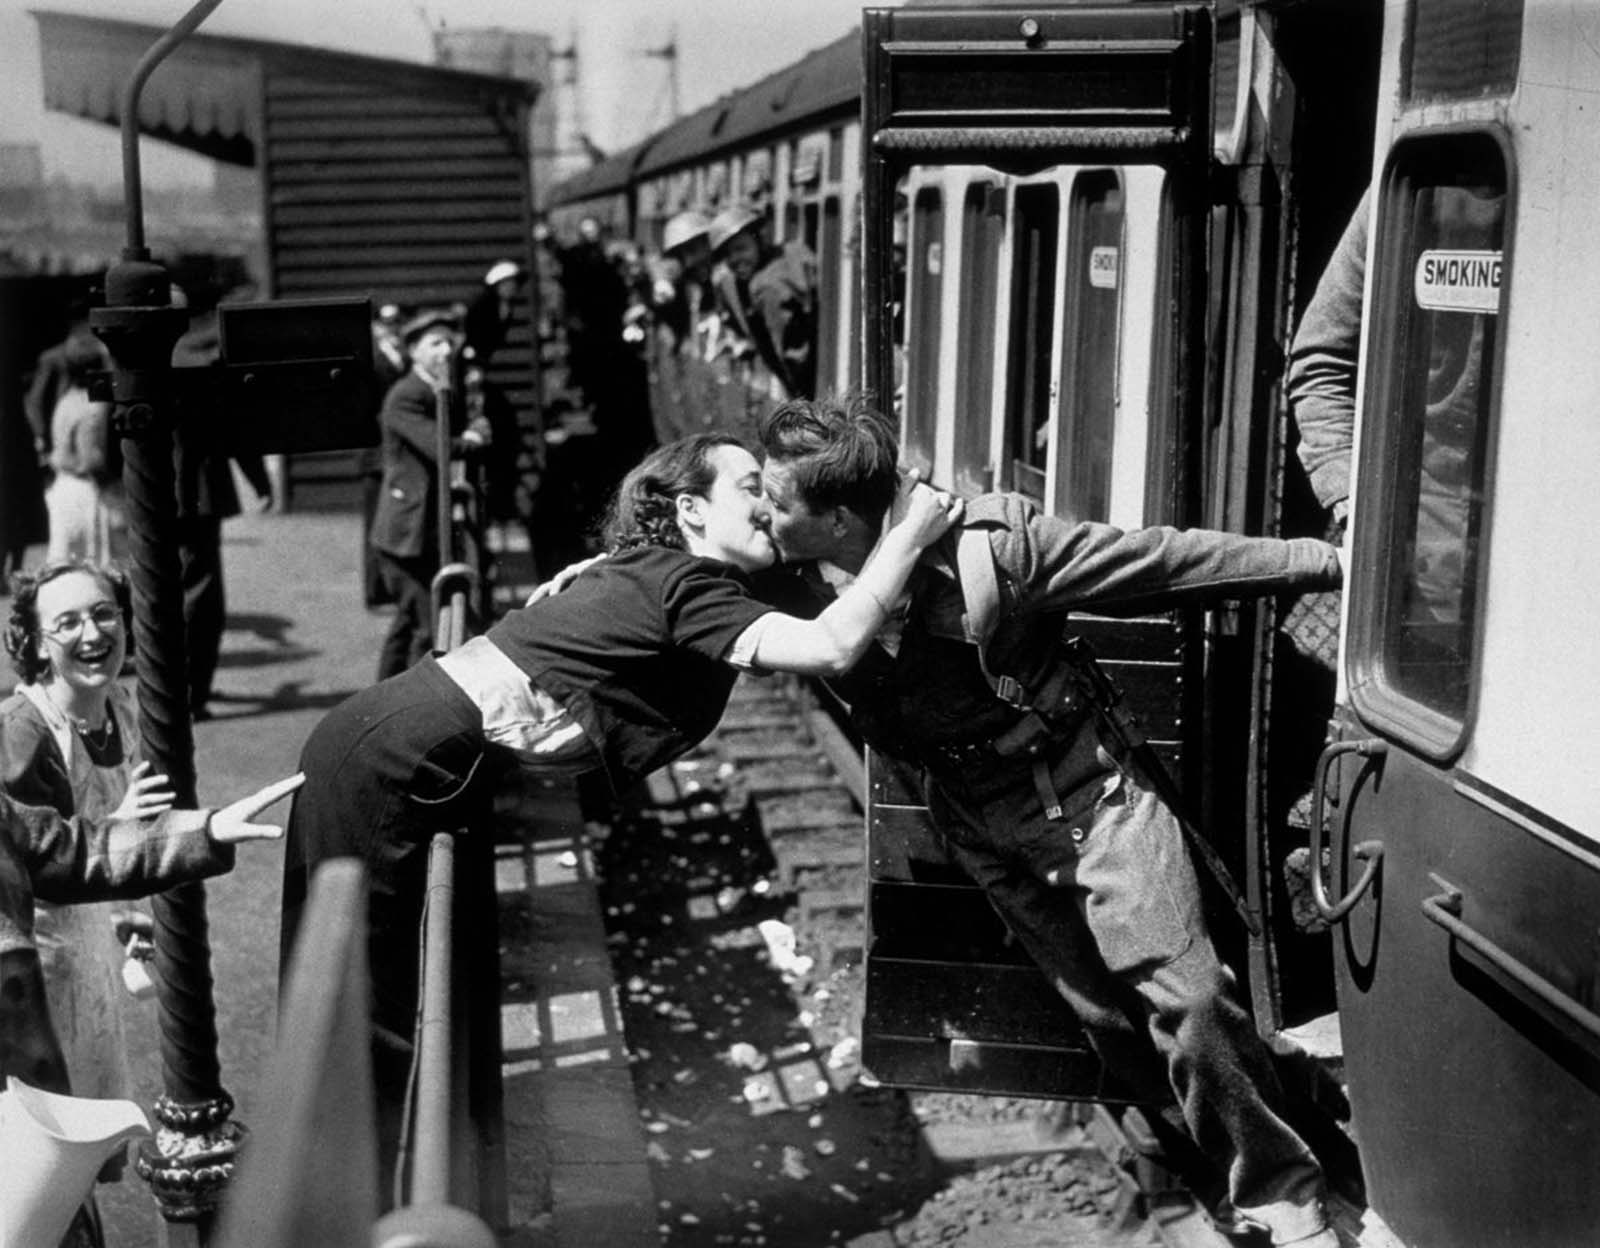 A soldier of the British Expeditionary Force is greeted by his girlfriend upon arriving back home.